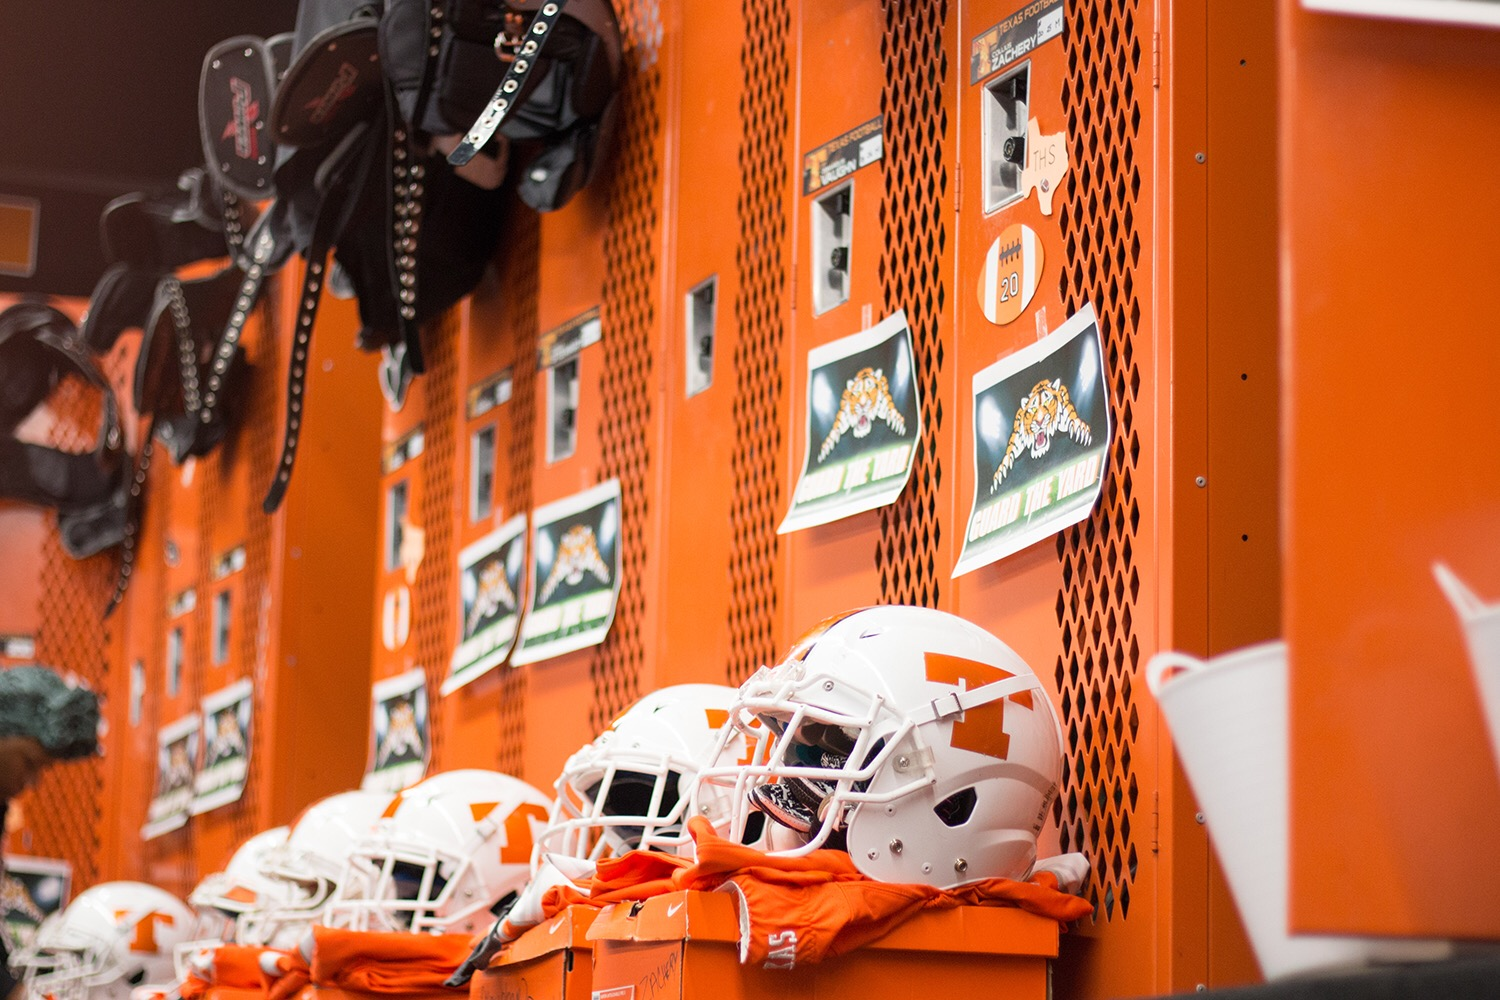 Football lockers are decorated with gifts from the mothers of players. This tradition started  to get mothers more involved with football.